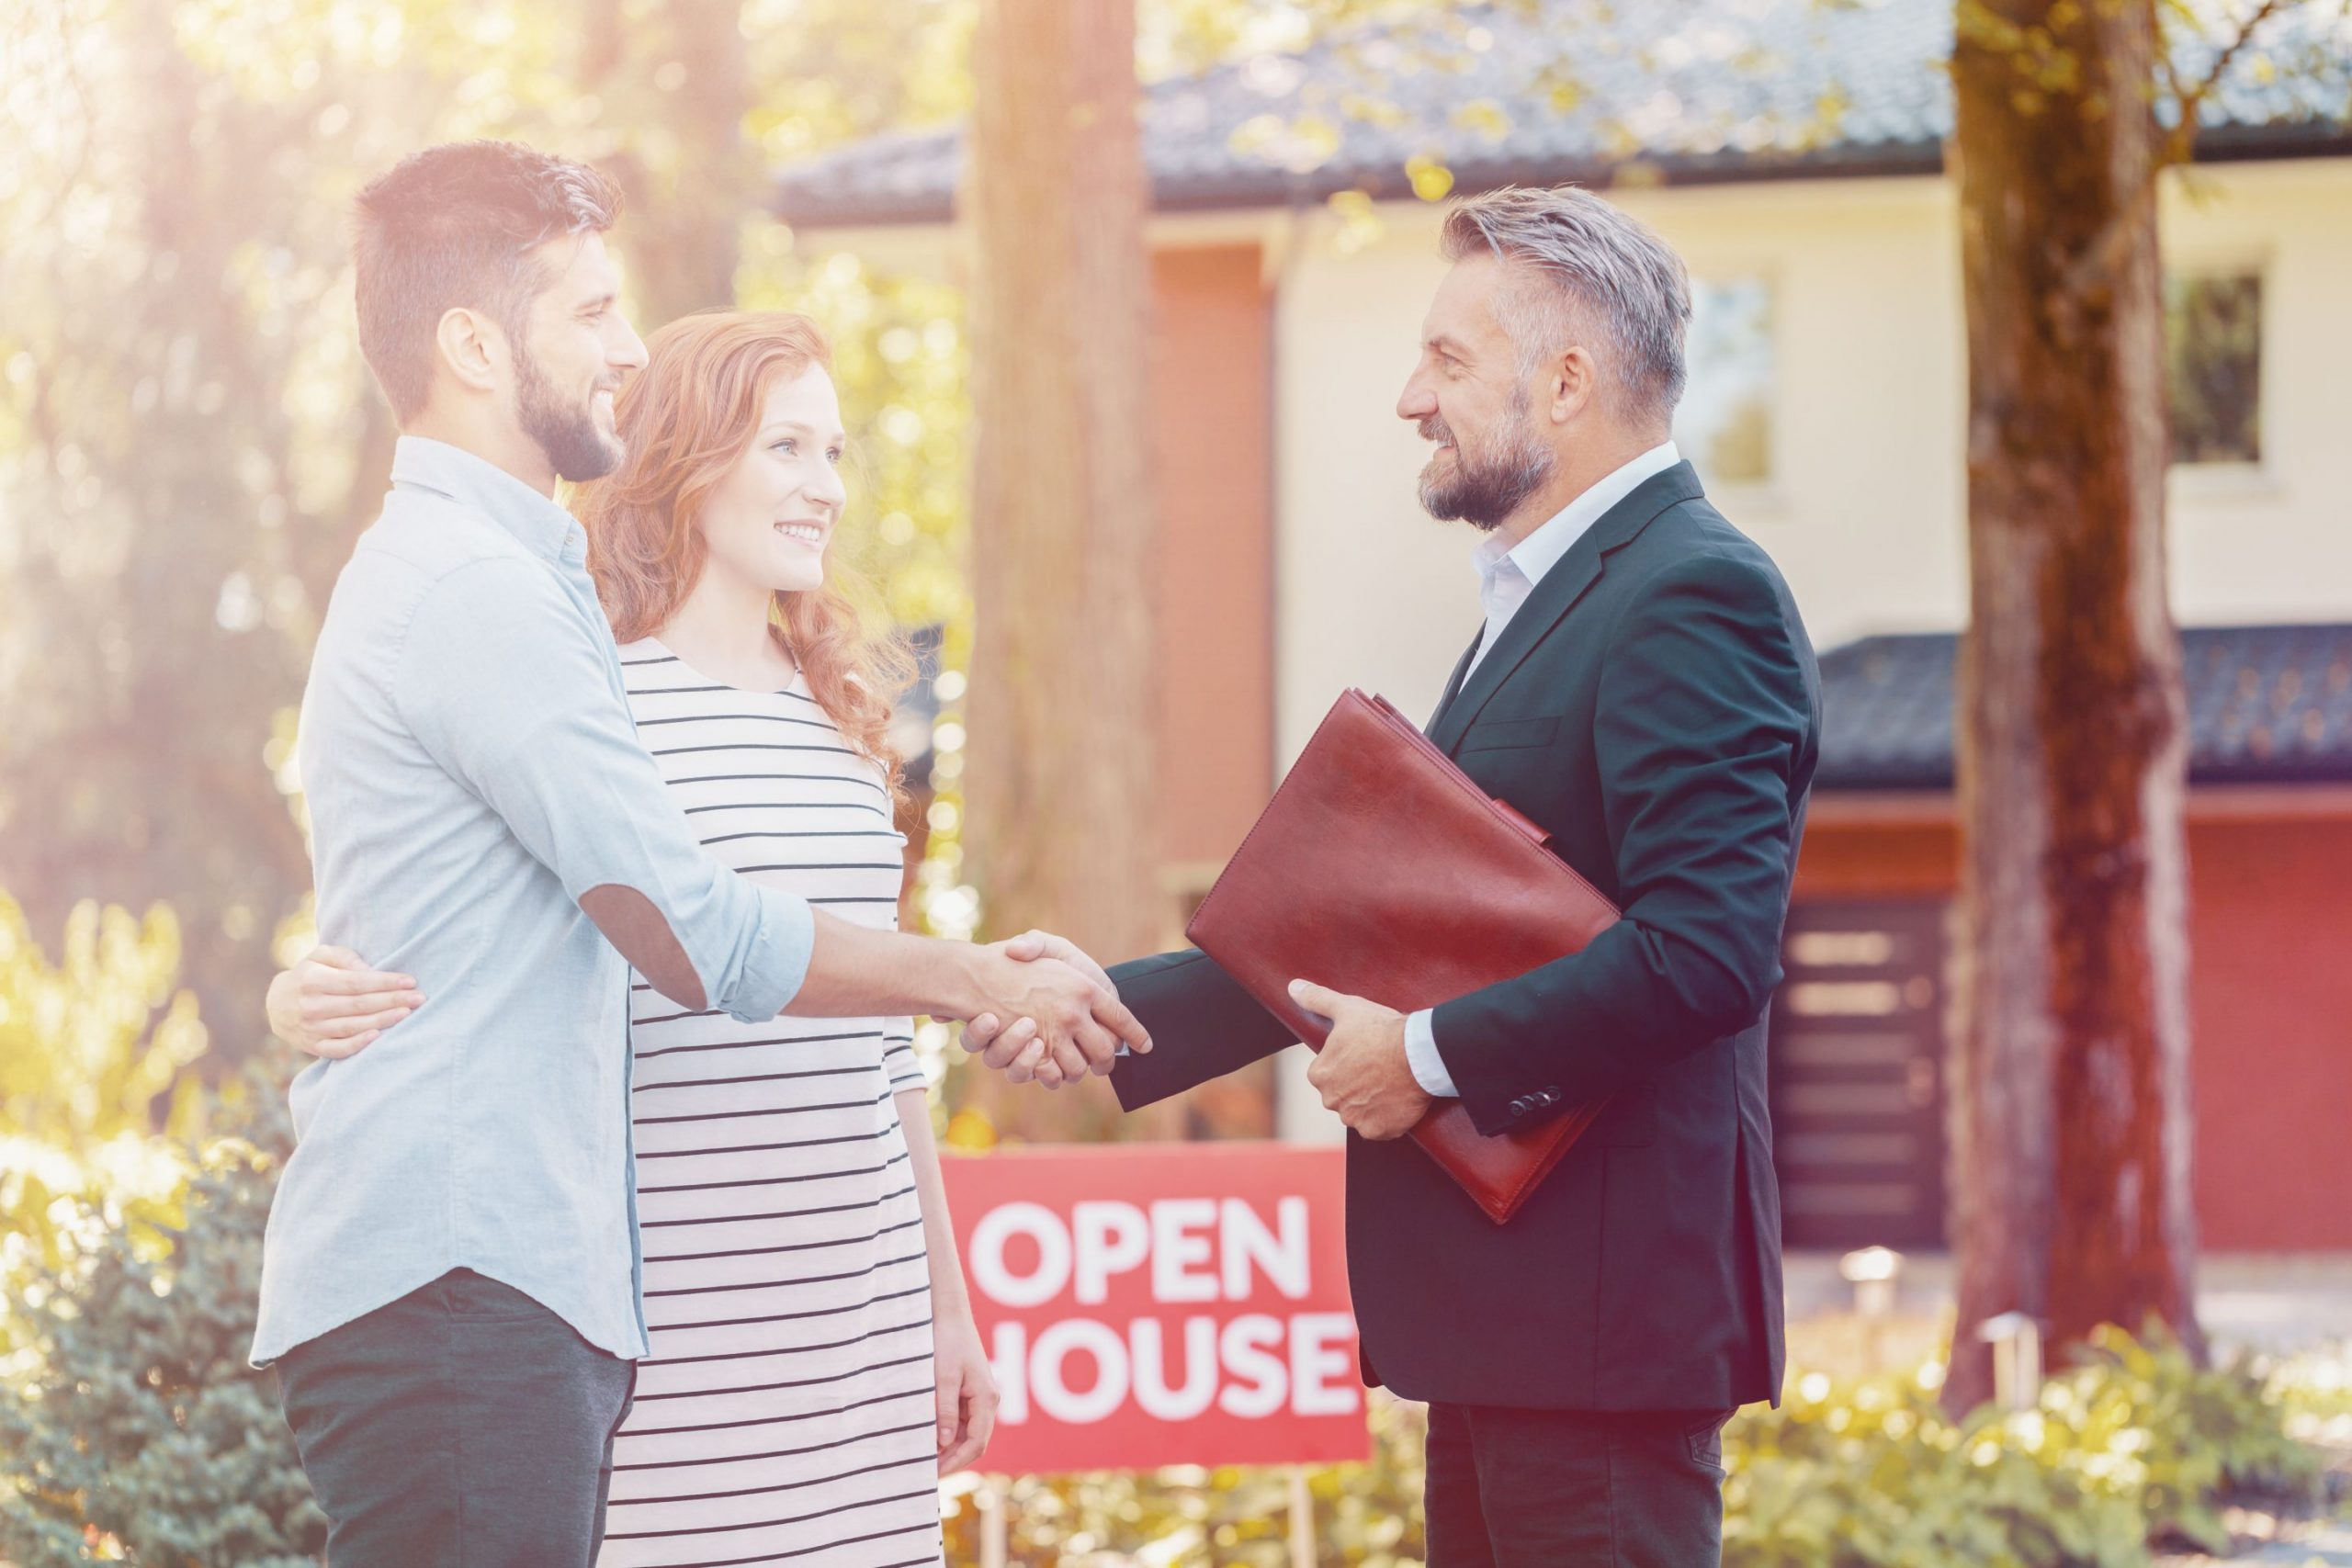 courtier immobilier outremont